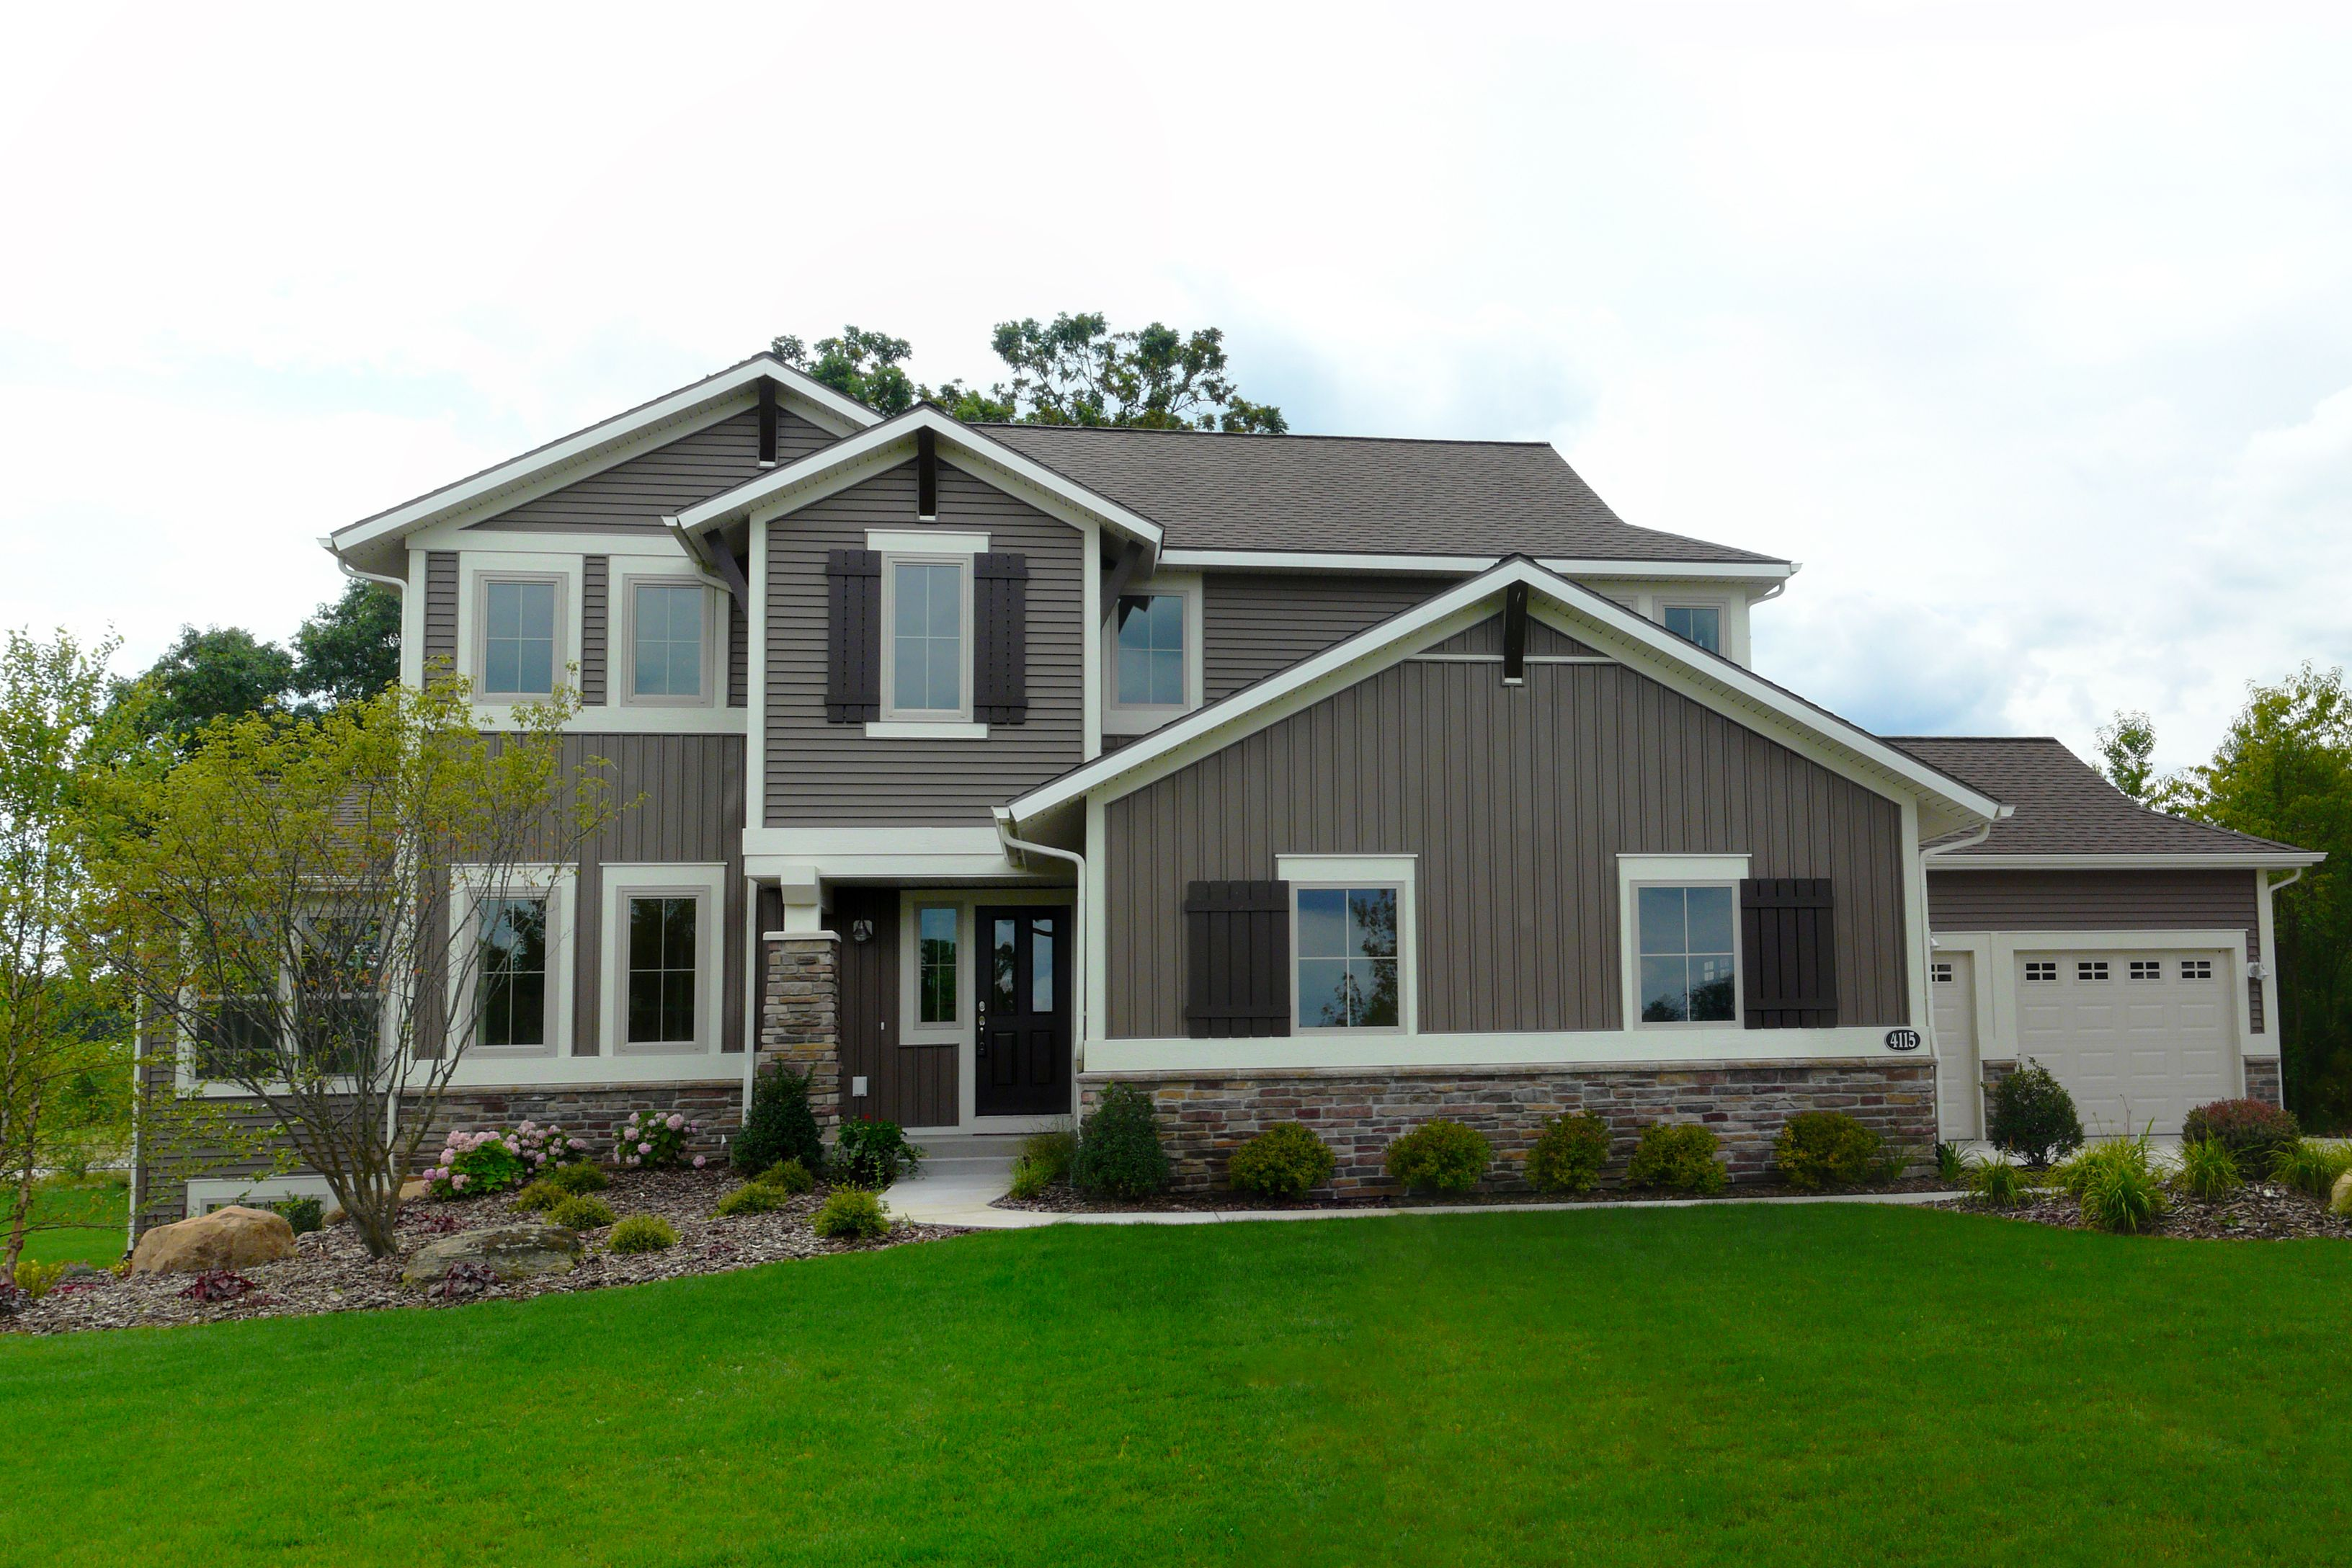 Eastbrook Homes Builds New, Custom, Energy Efficient Homes In Communities  Throughout West Michigan, Lansing And Auburn, Alabama.